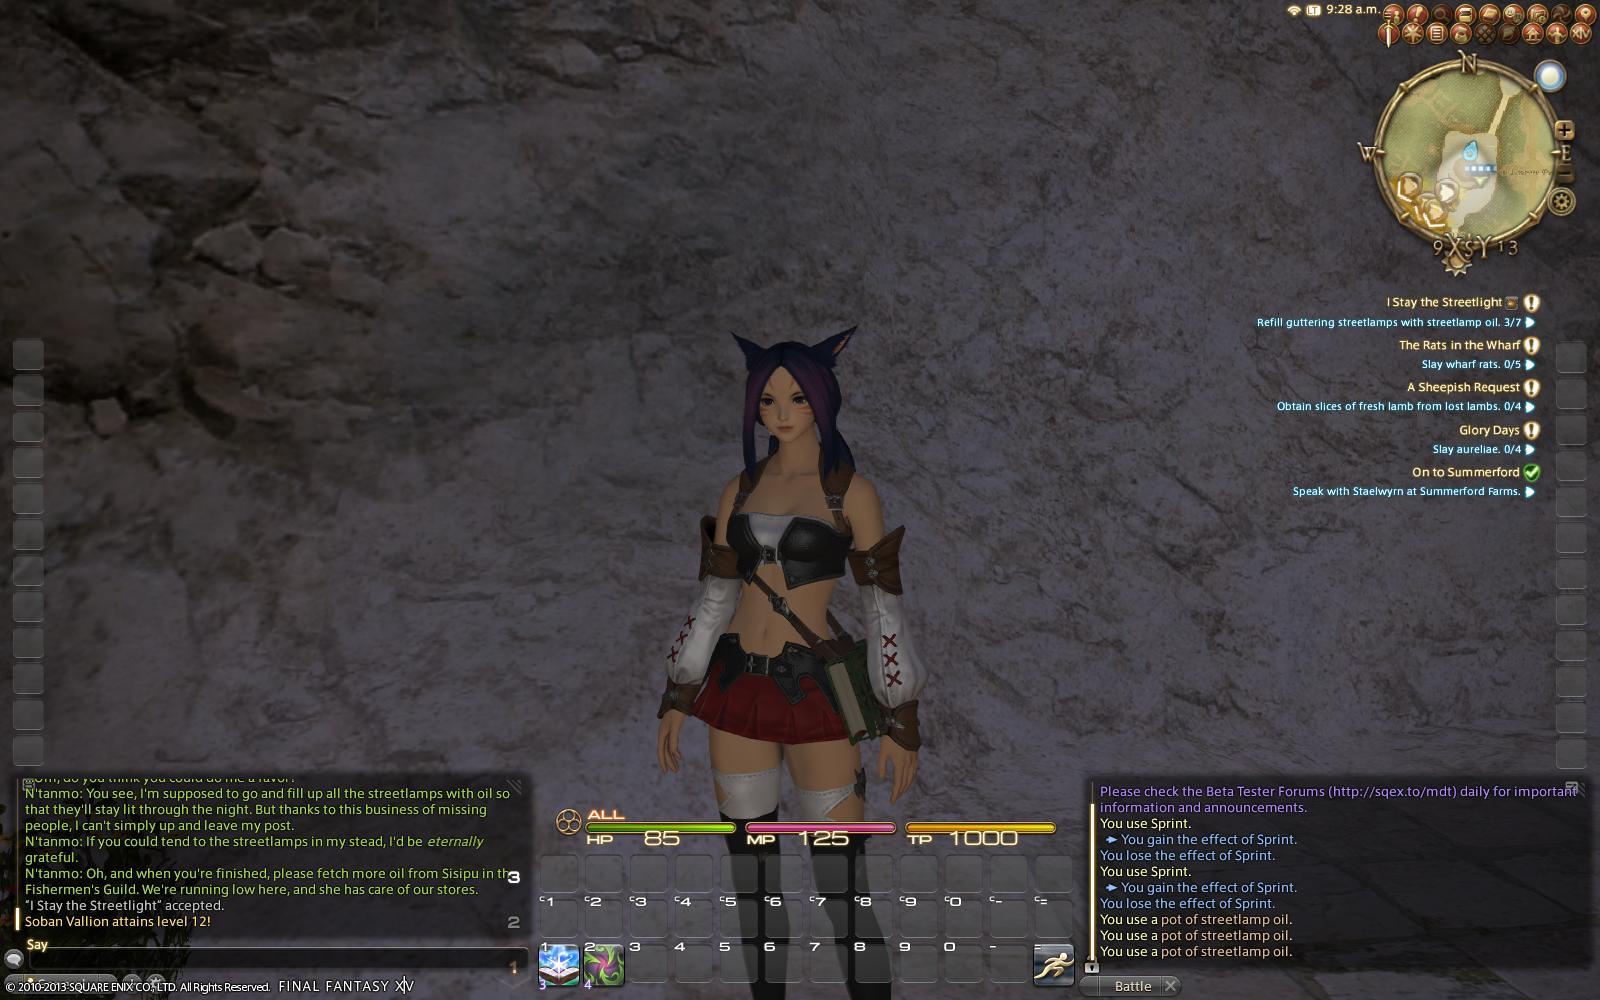 sephyuyx ffxiv make petbar command toggle your visibility pictures remember anyone post know